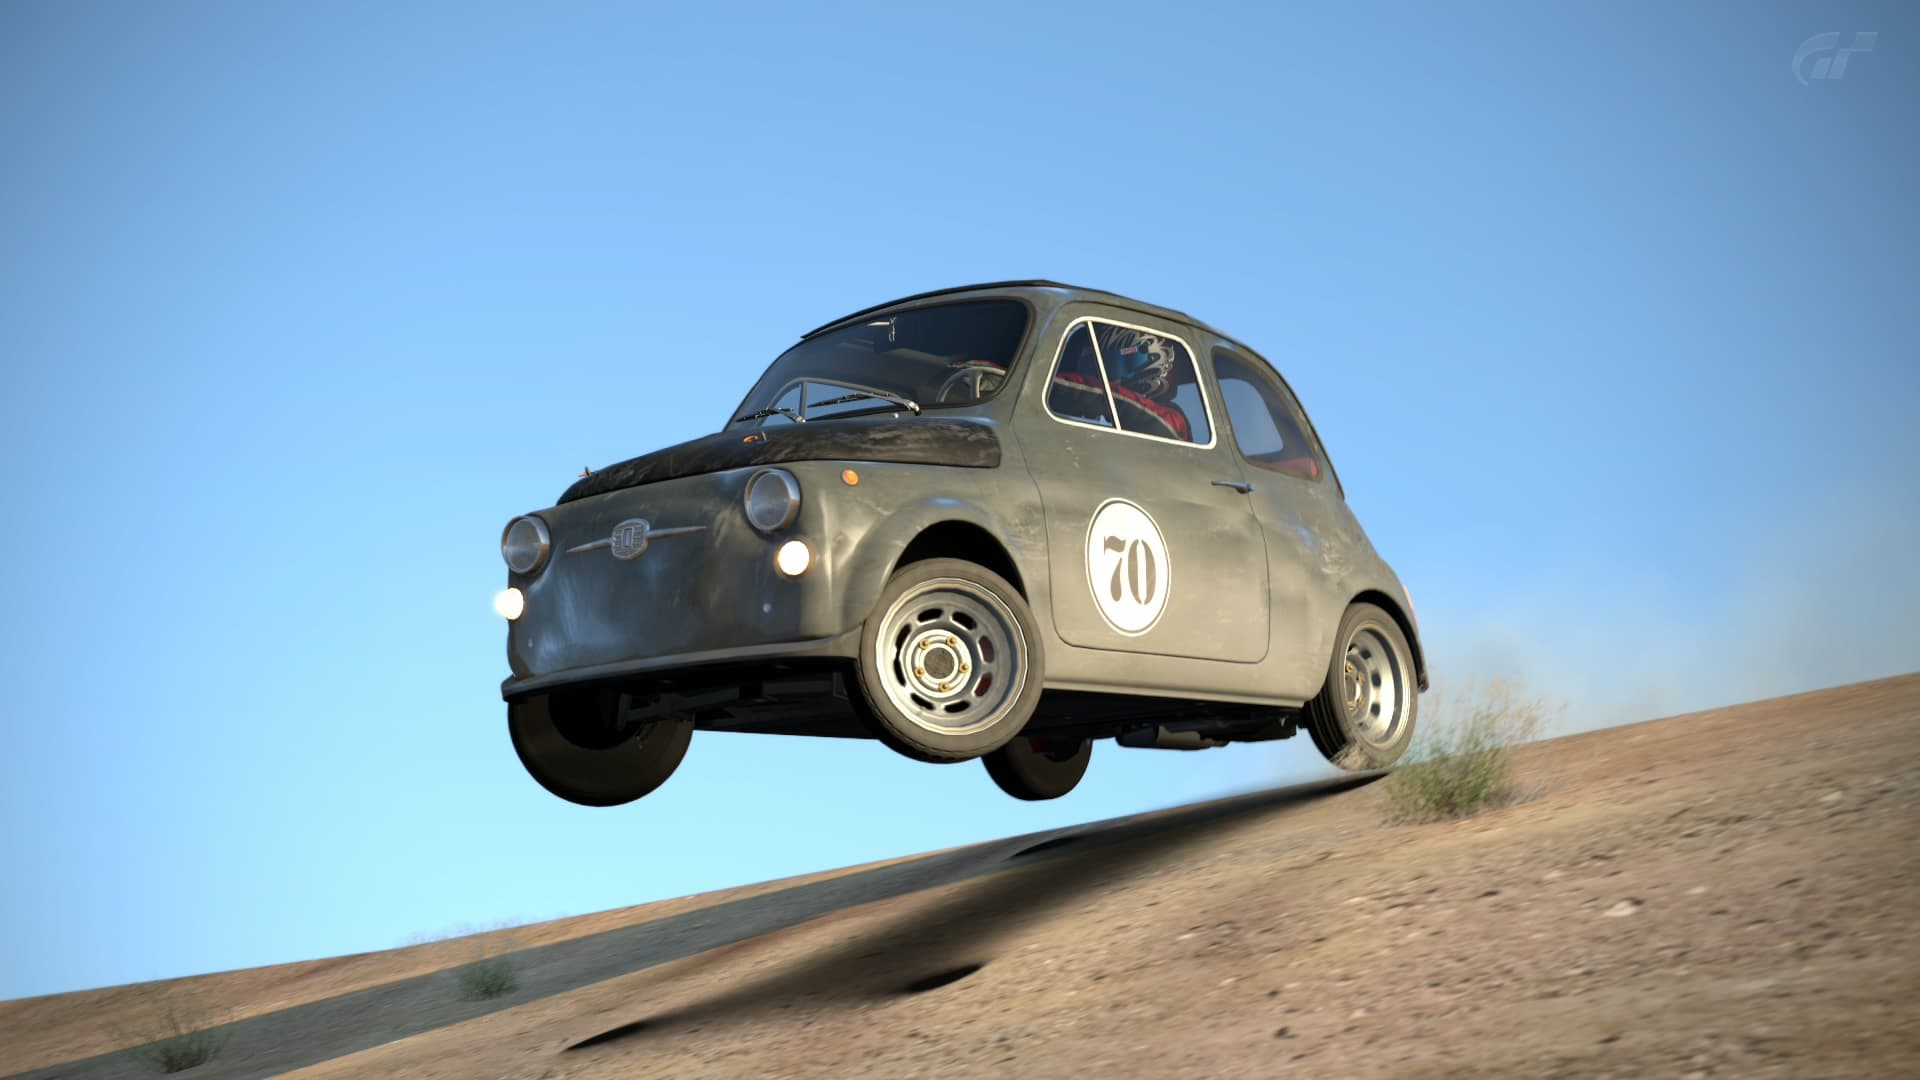 30 Fiat 500 Hd Wallpapers For Desktop Free Download